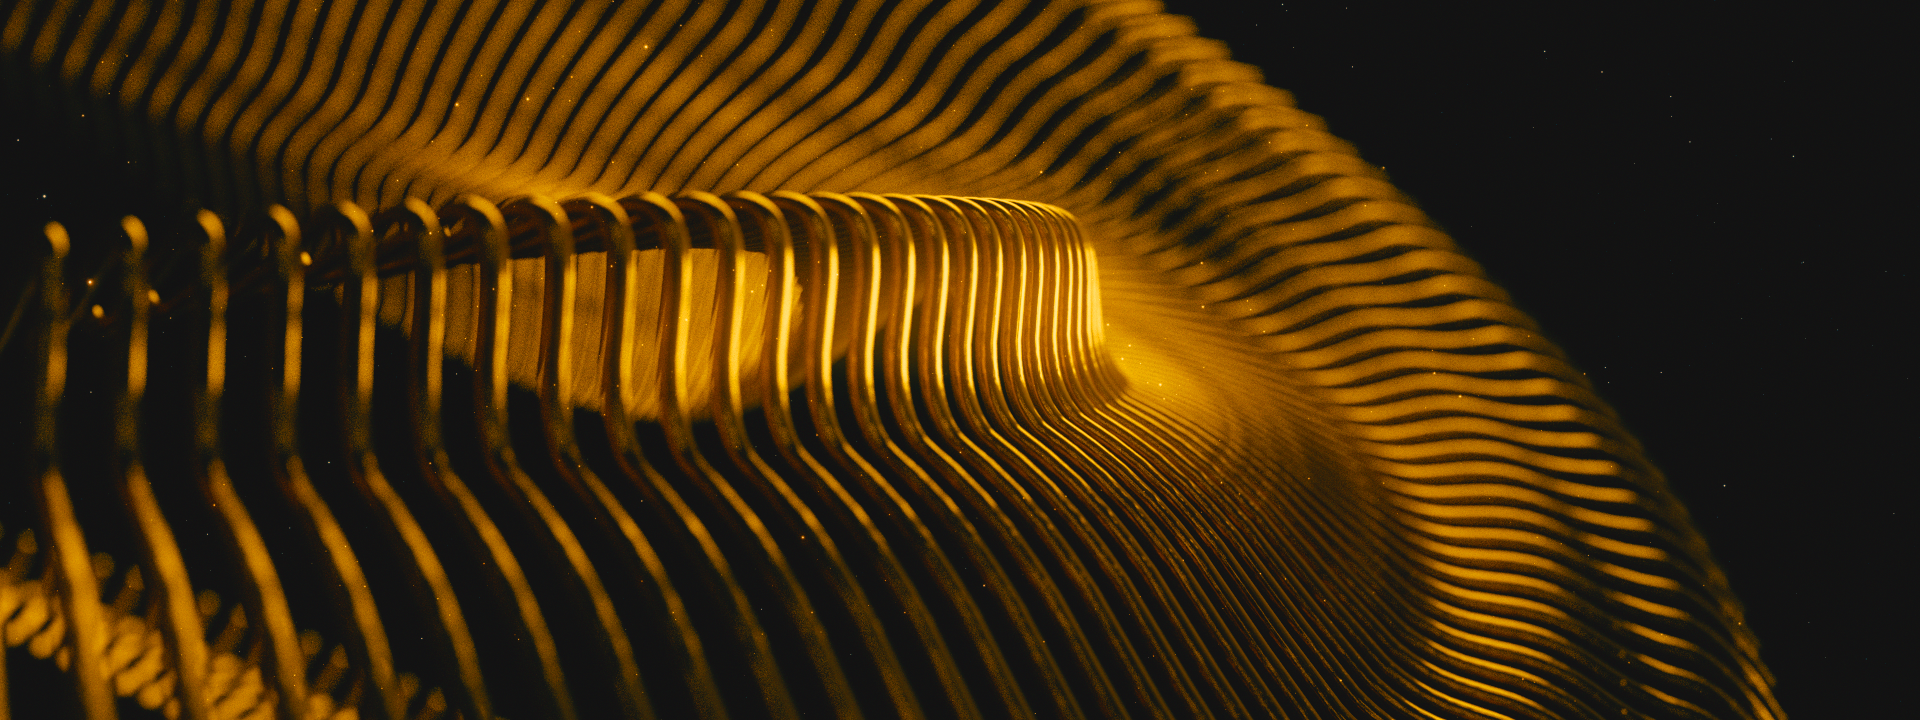 Waves_Of_Gold_02_00001.png